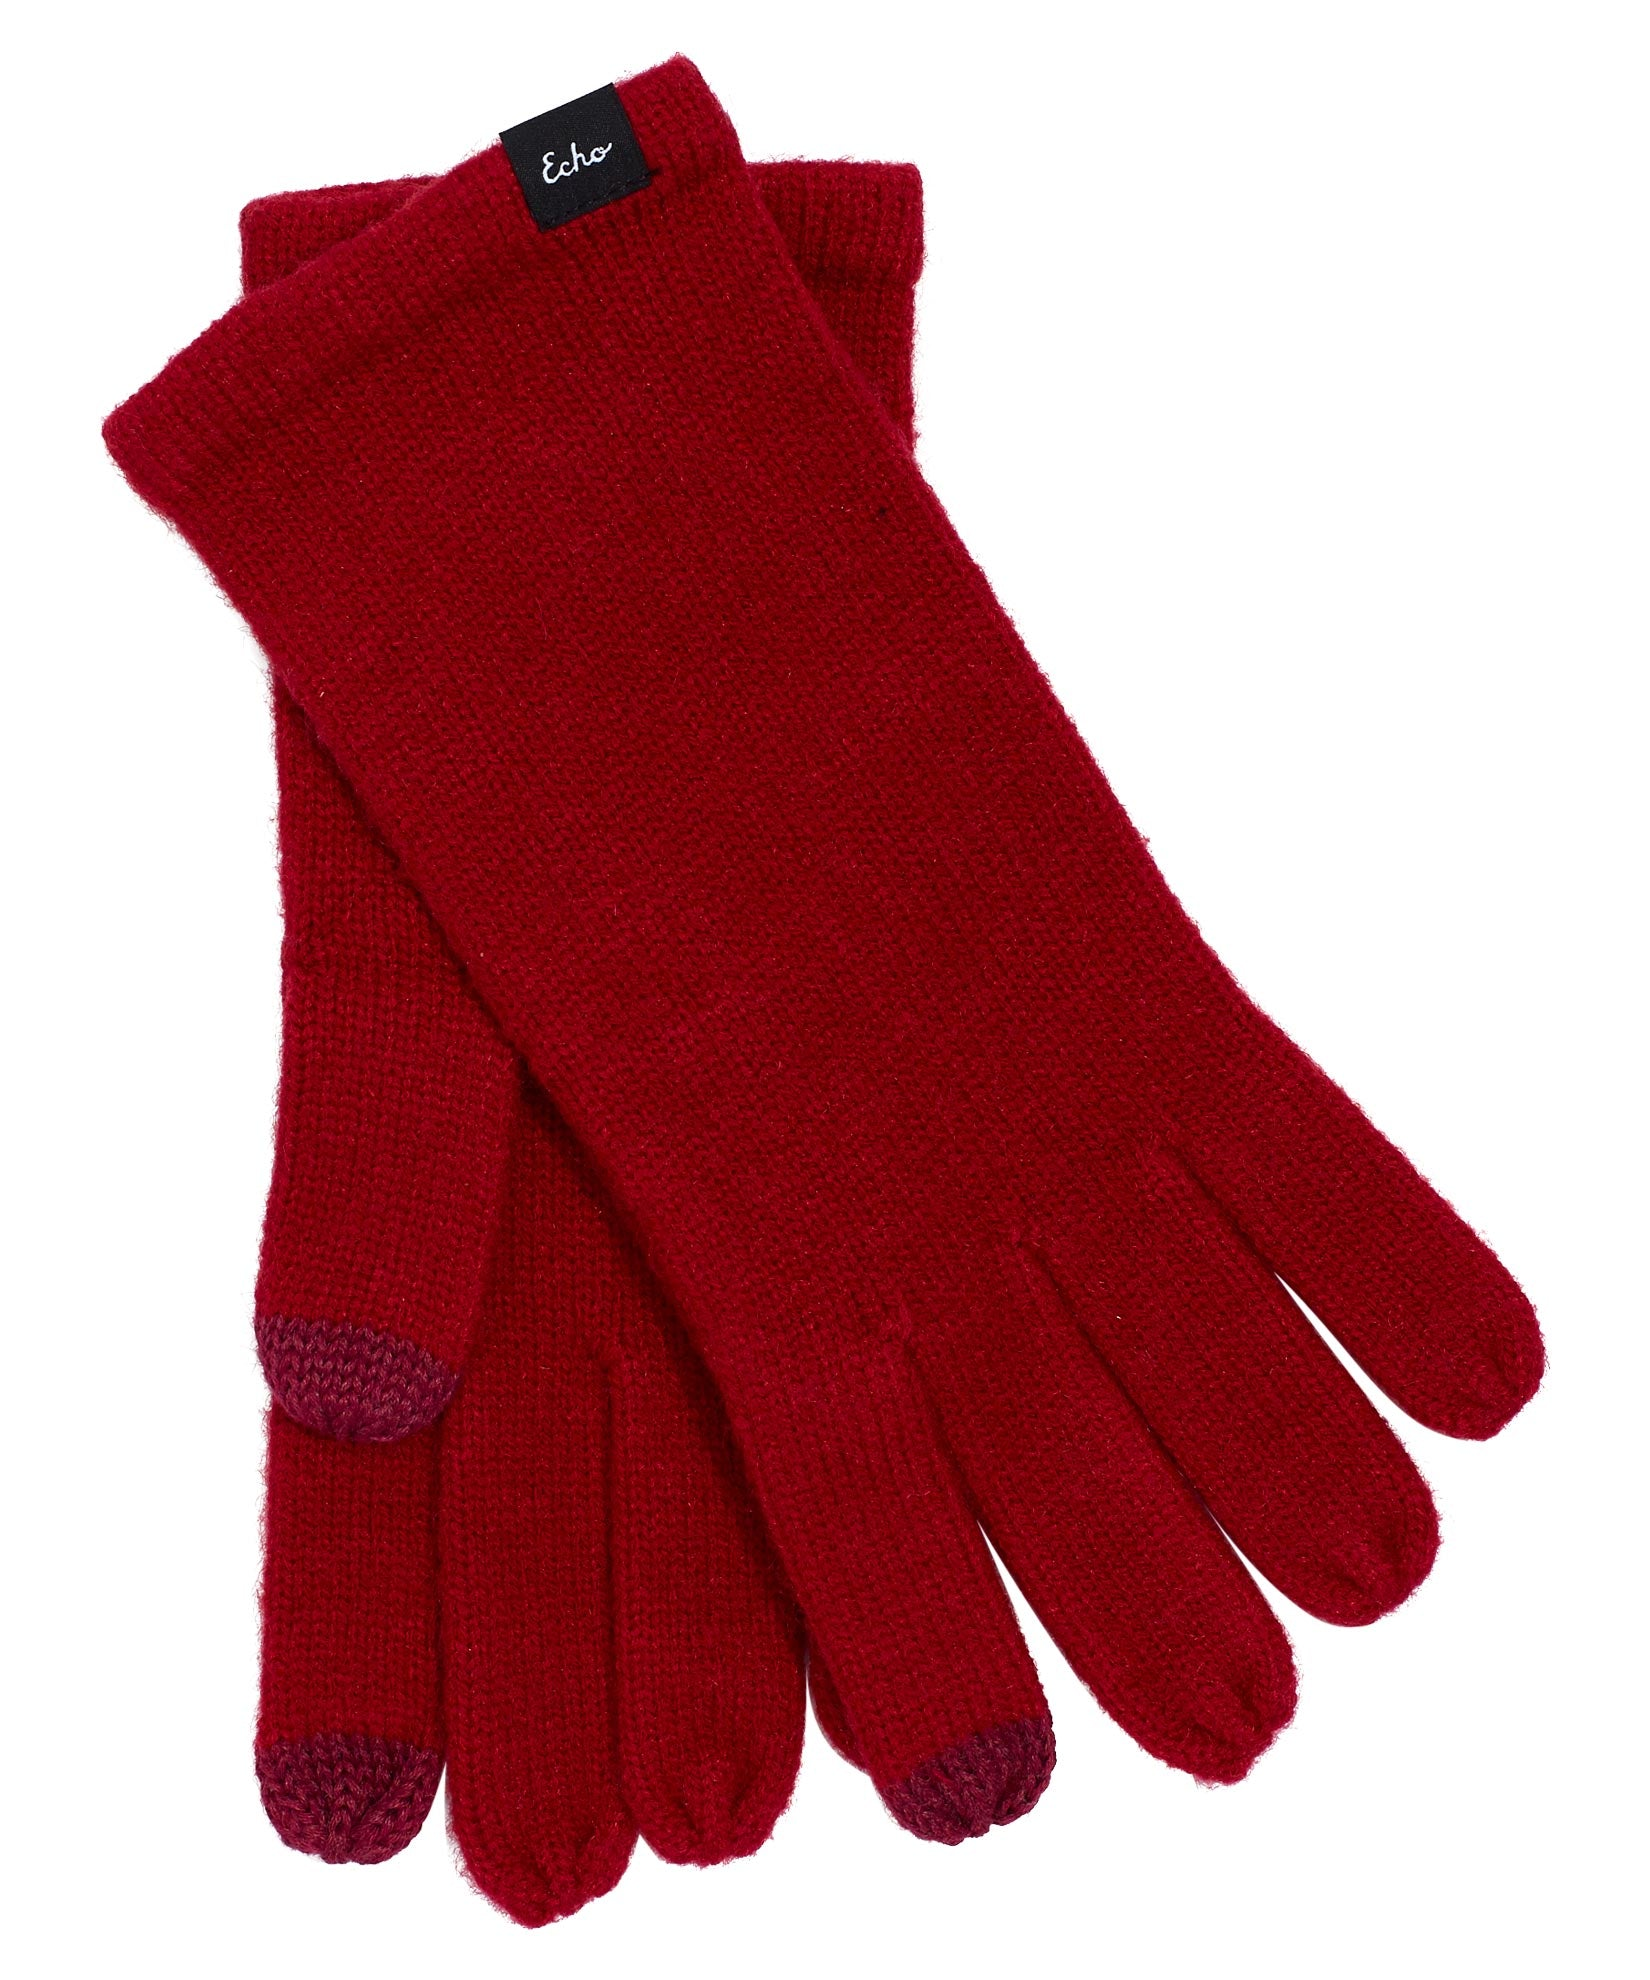 Ruby Red - Echo Knit Touch Glove